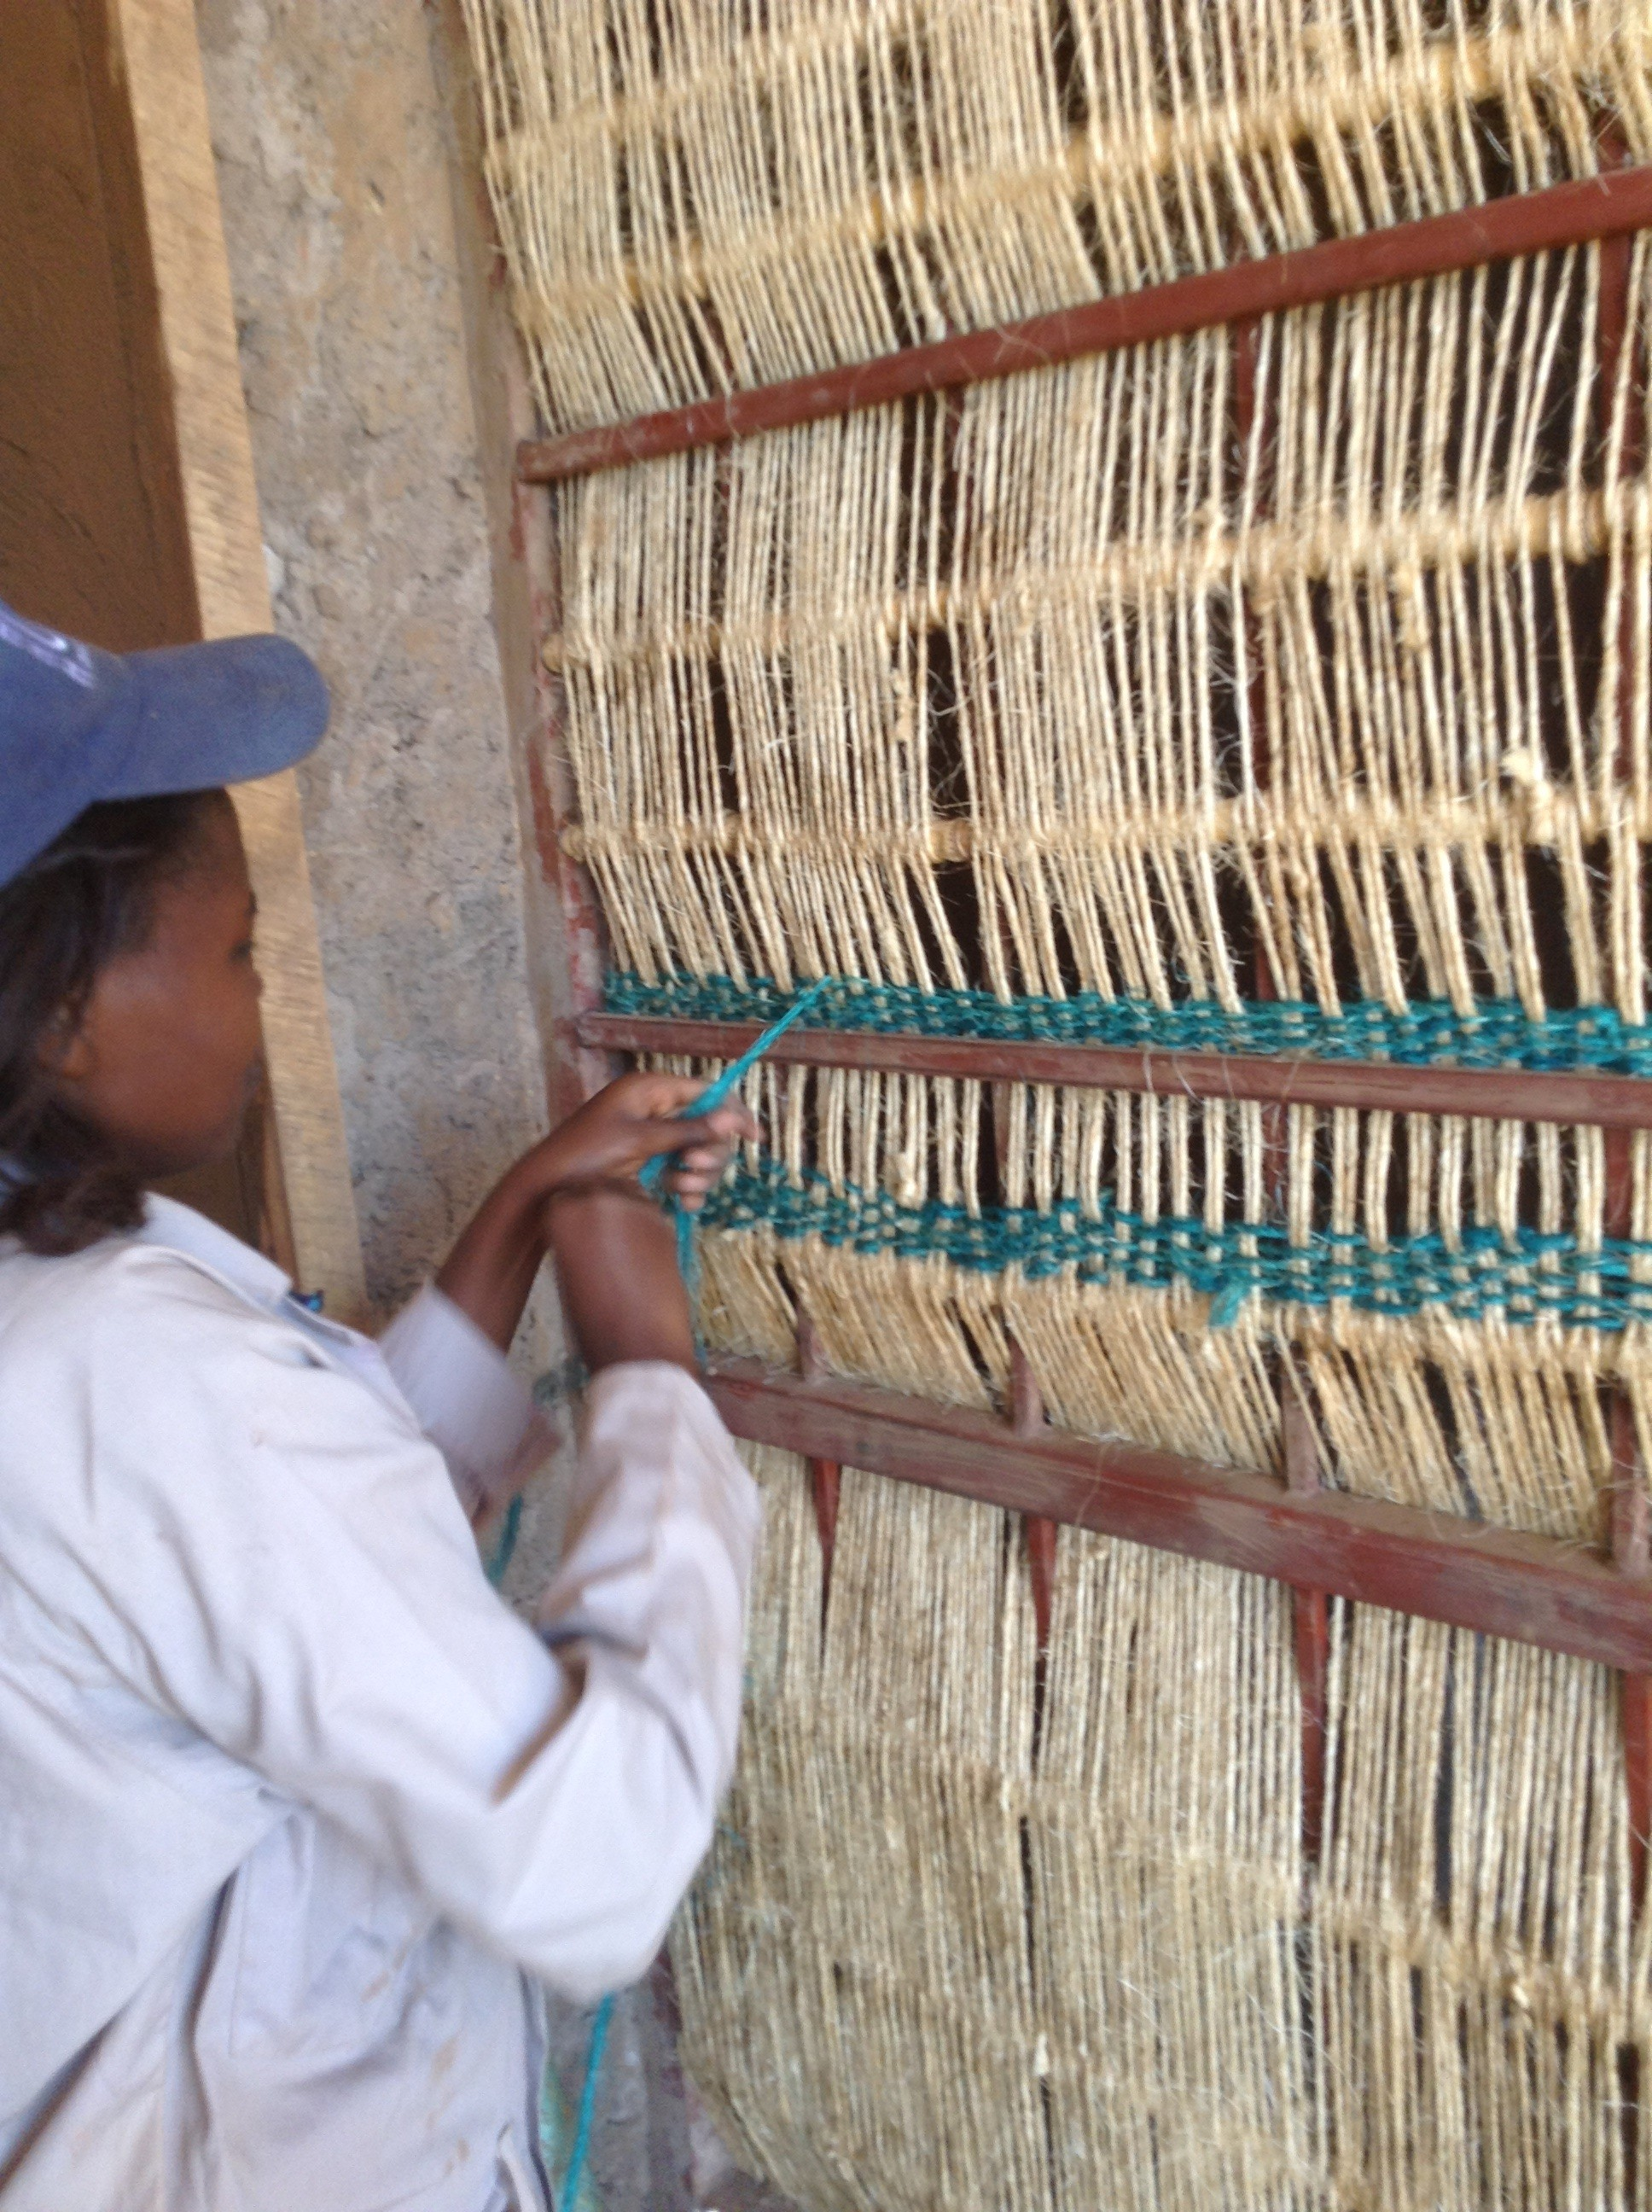 A hand-woven screen provides privacy for the cooking space. The use of vernacular materials and building practices in Rwanda is as much evidence of economic expediency as cultural concern. Image © Yutaka Sho